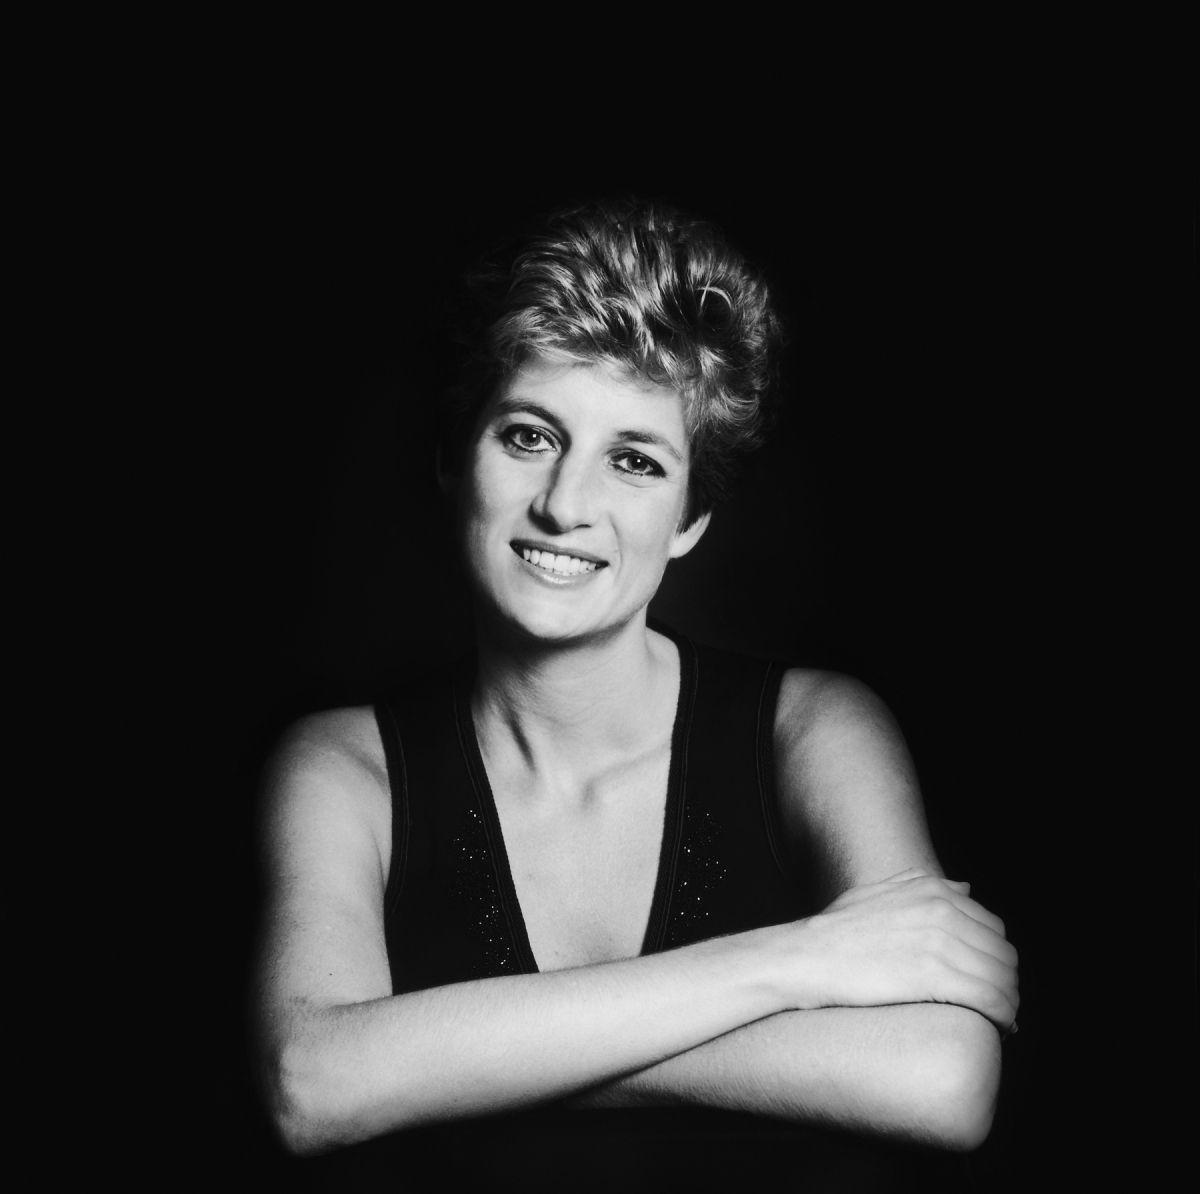 lady Diana wallpaper - Image Wallpapers